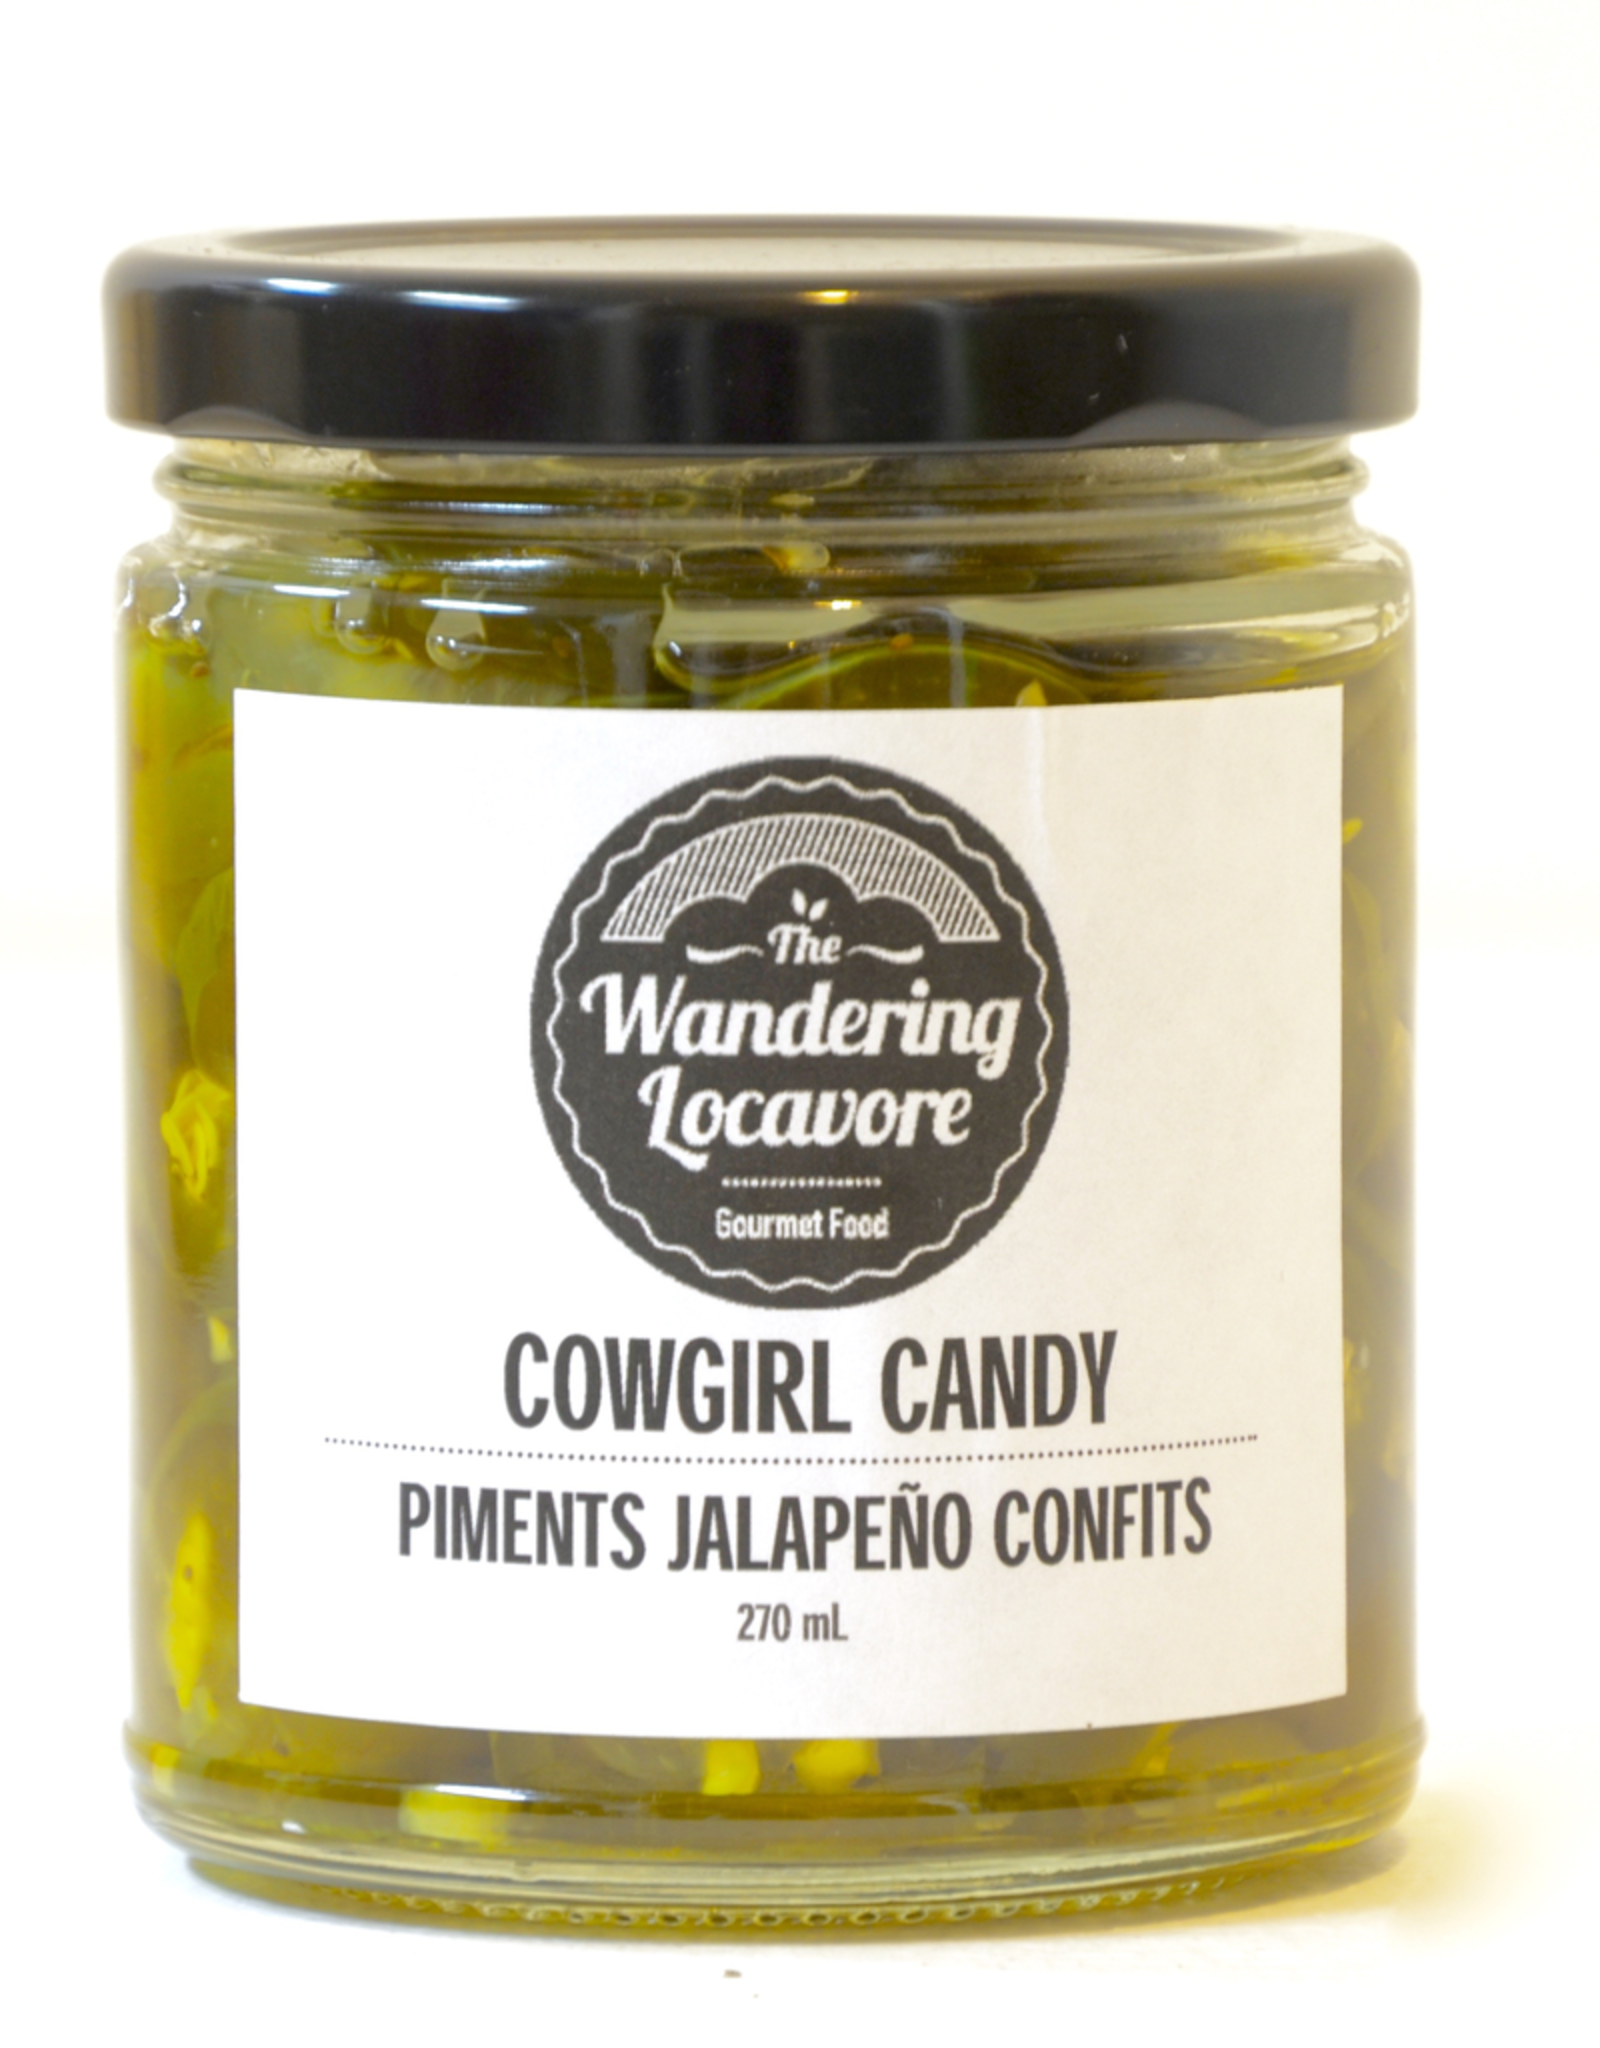 Cowgirl Candy Jalapeno Peppers